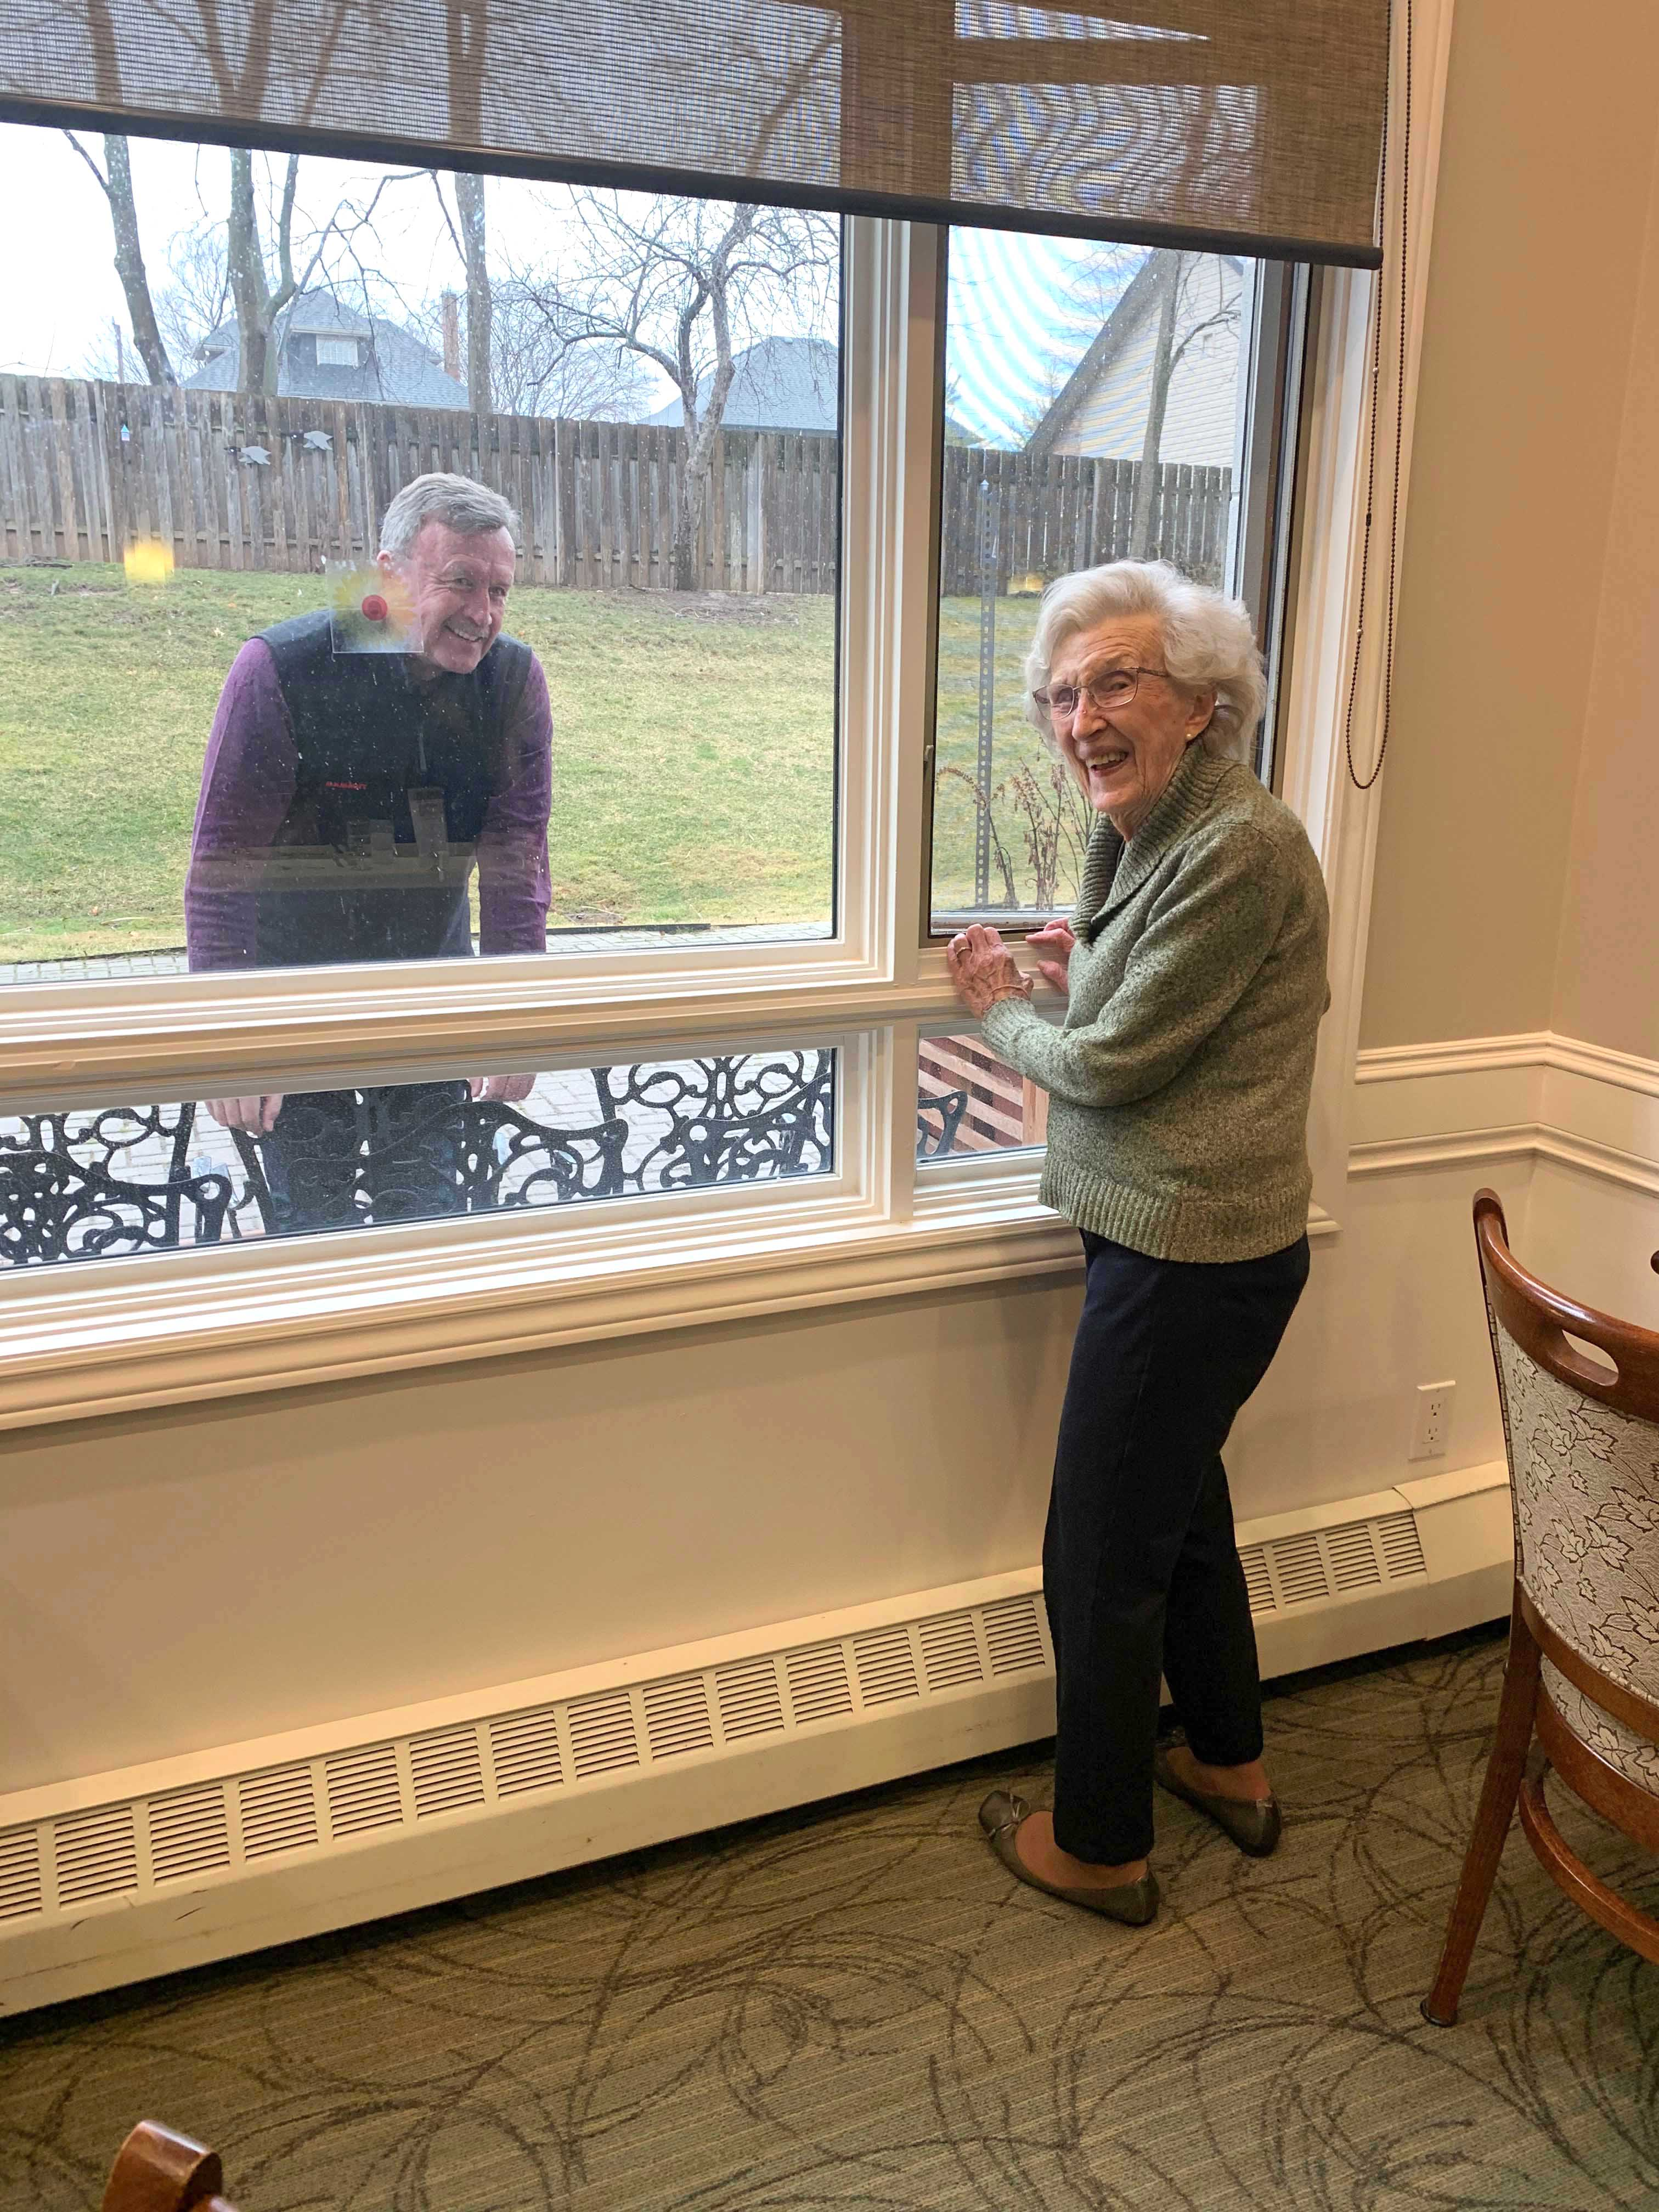 A resident having a window visit with a family member.